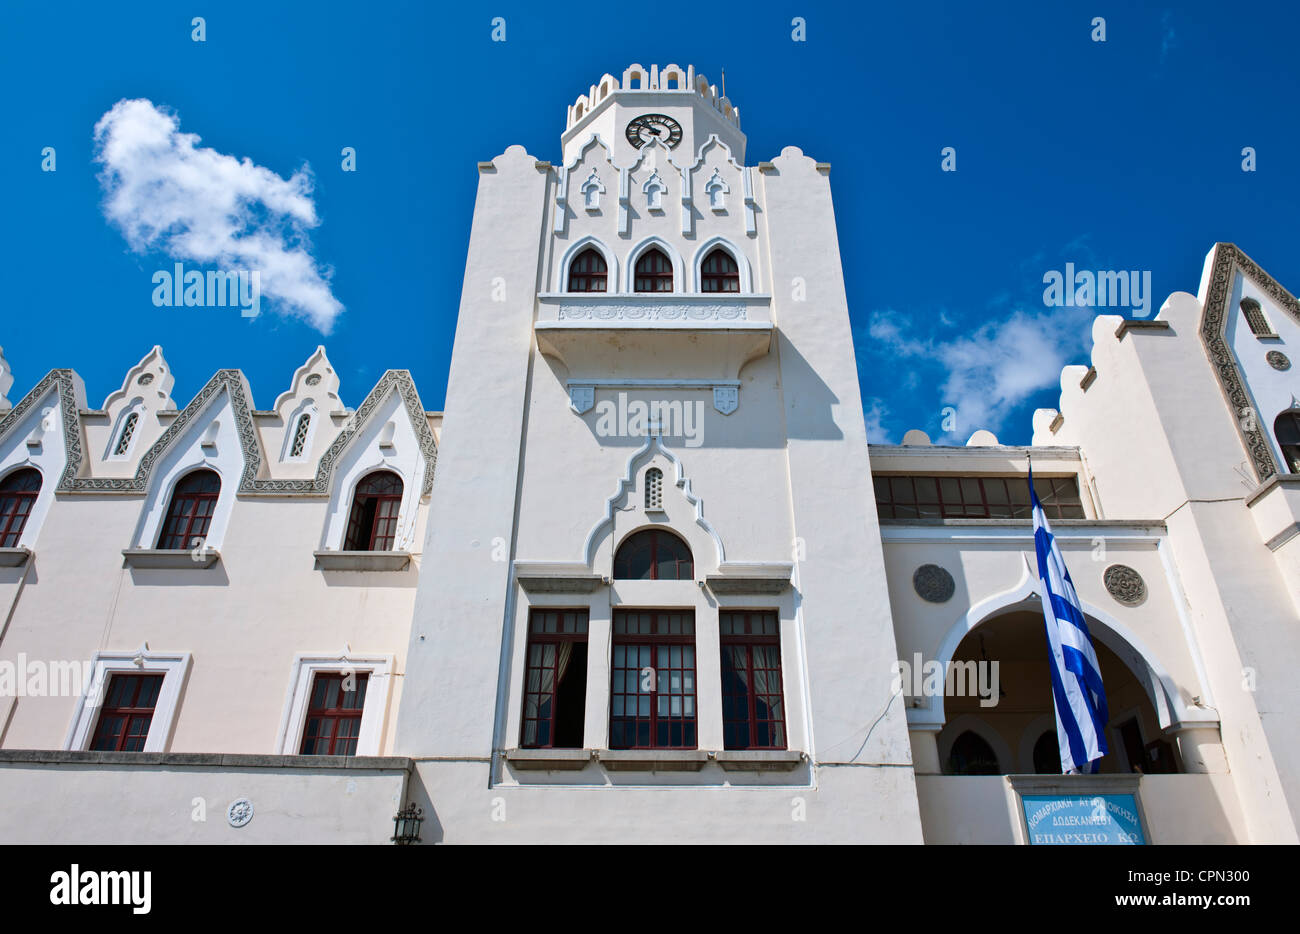 Europe Greece, Dodecanese, Kos, the Justice Palace in the waterfront - Stock Image